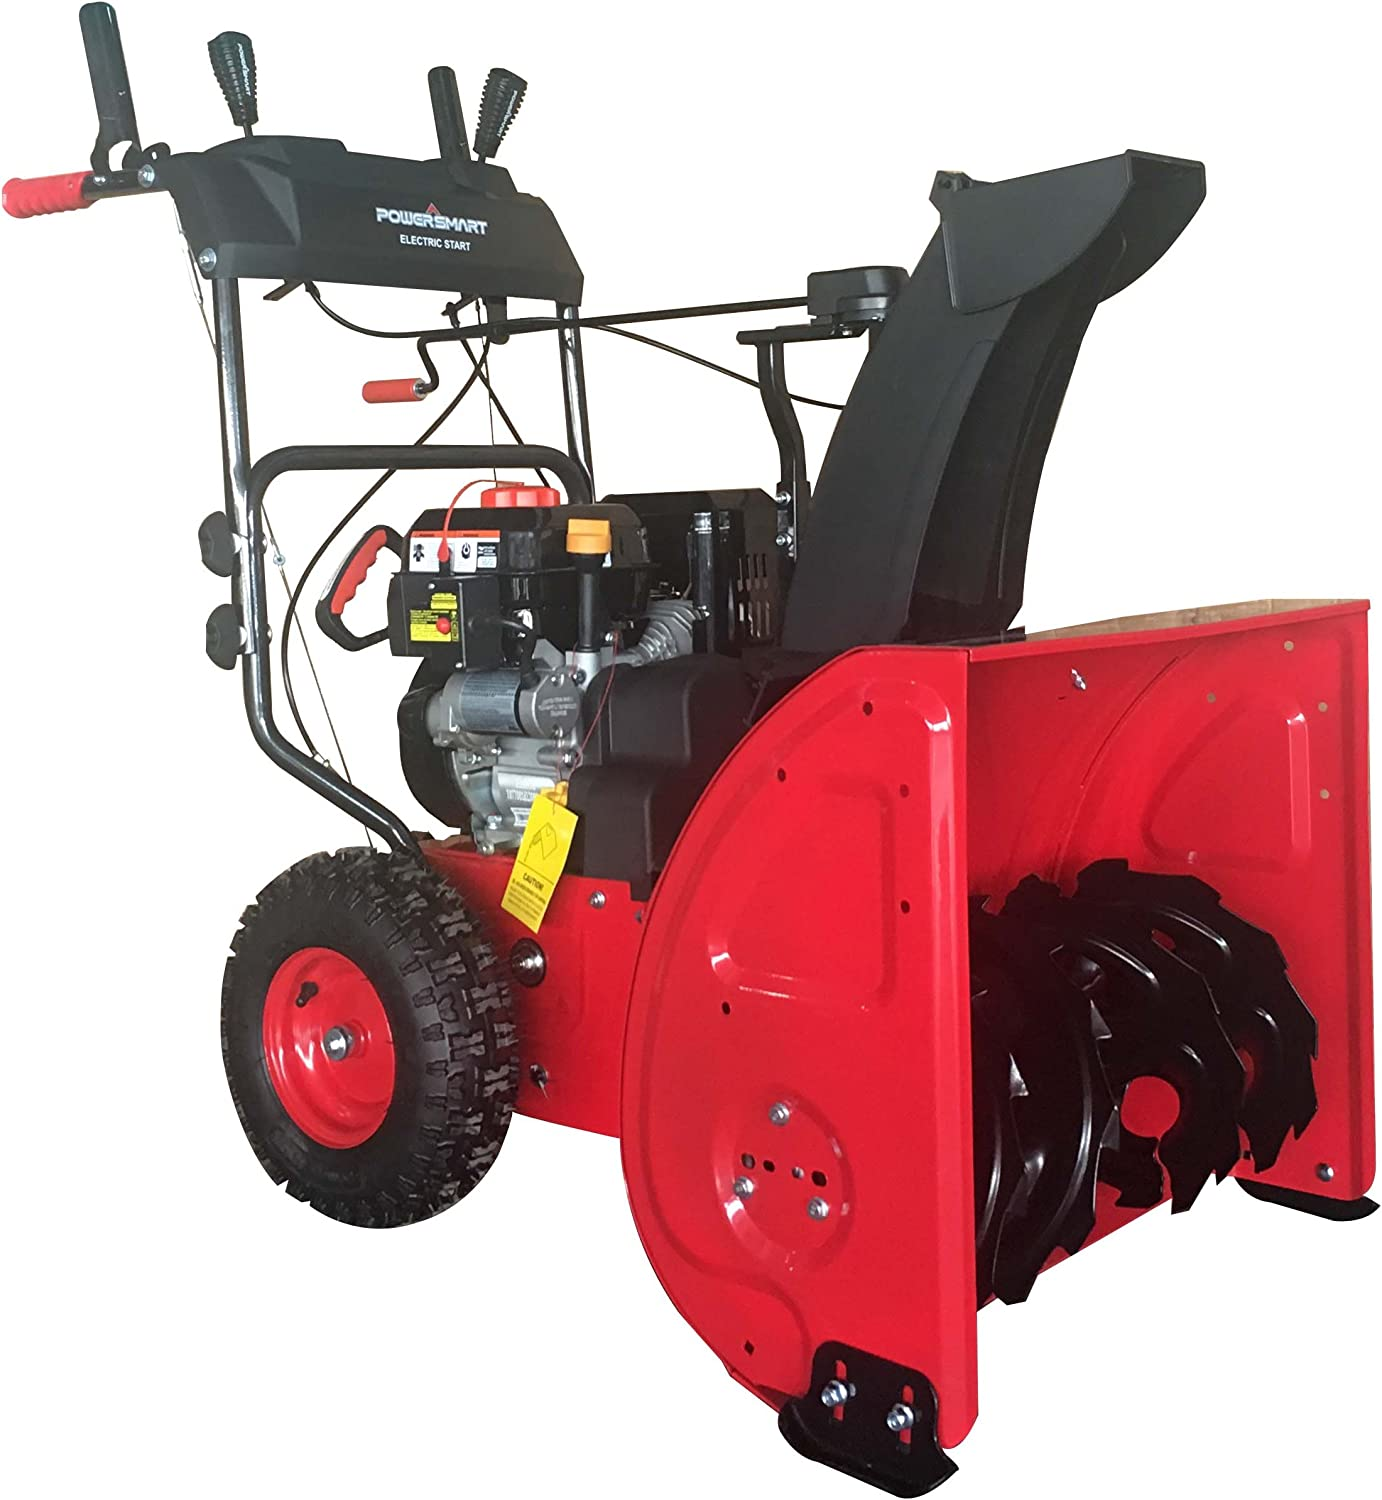 Image of PowerSmart DB72024PA two stage gas Snow Blower